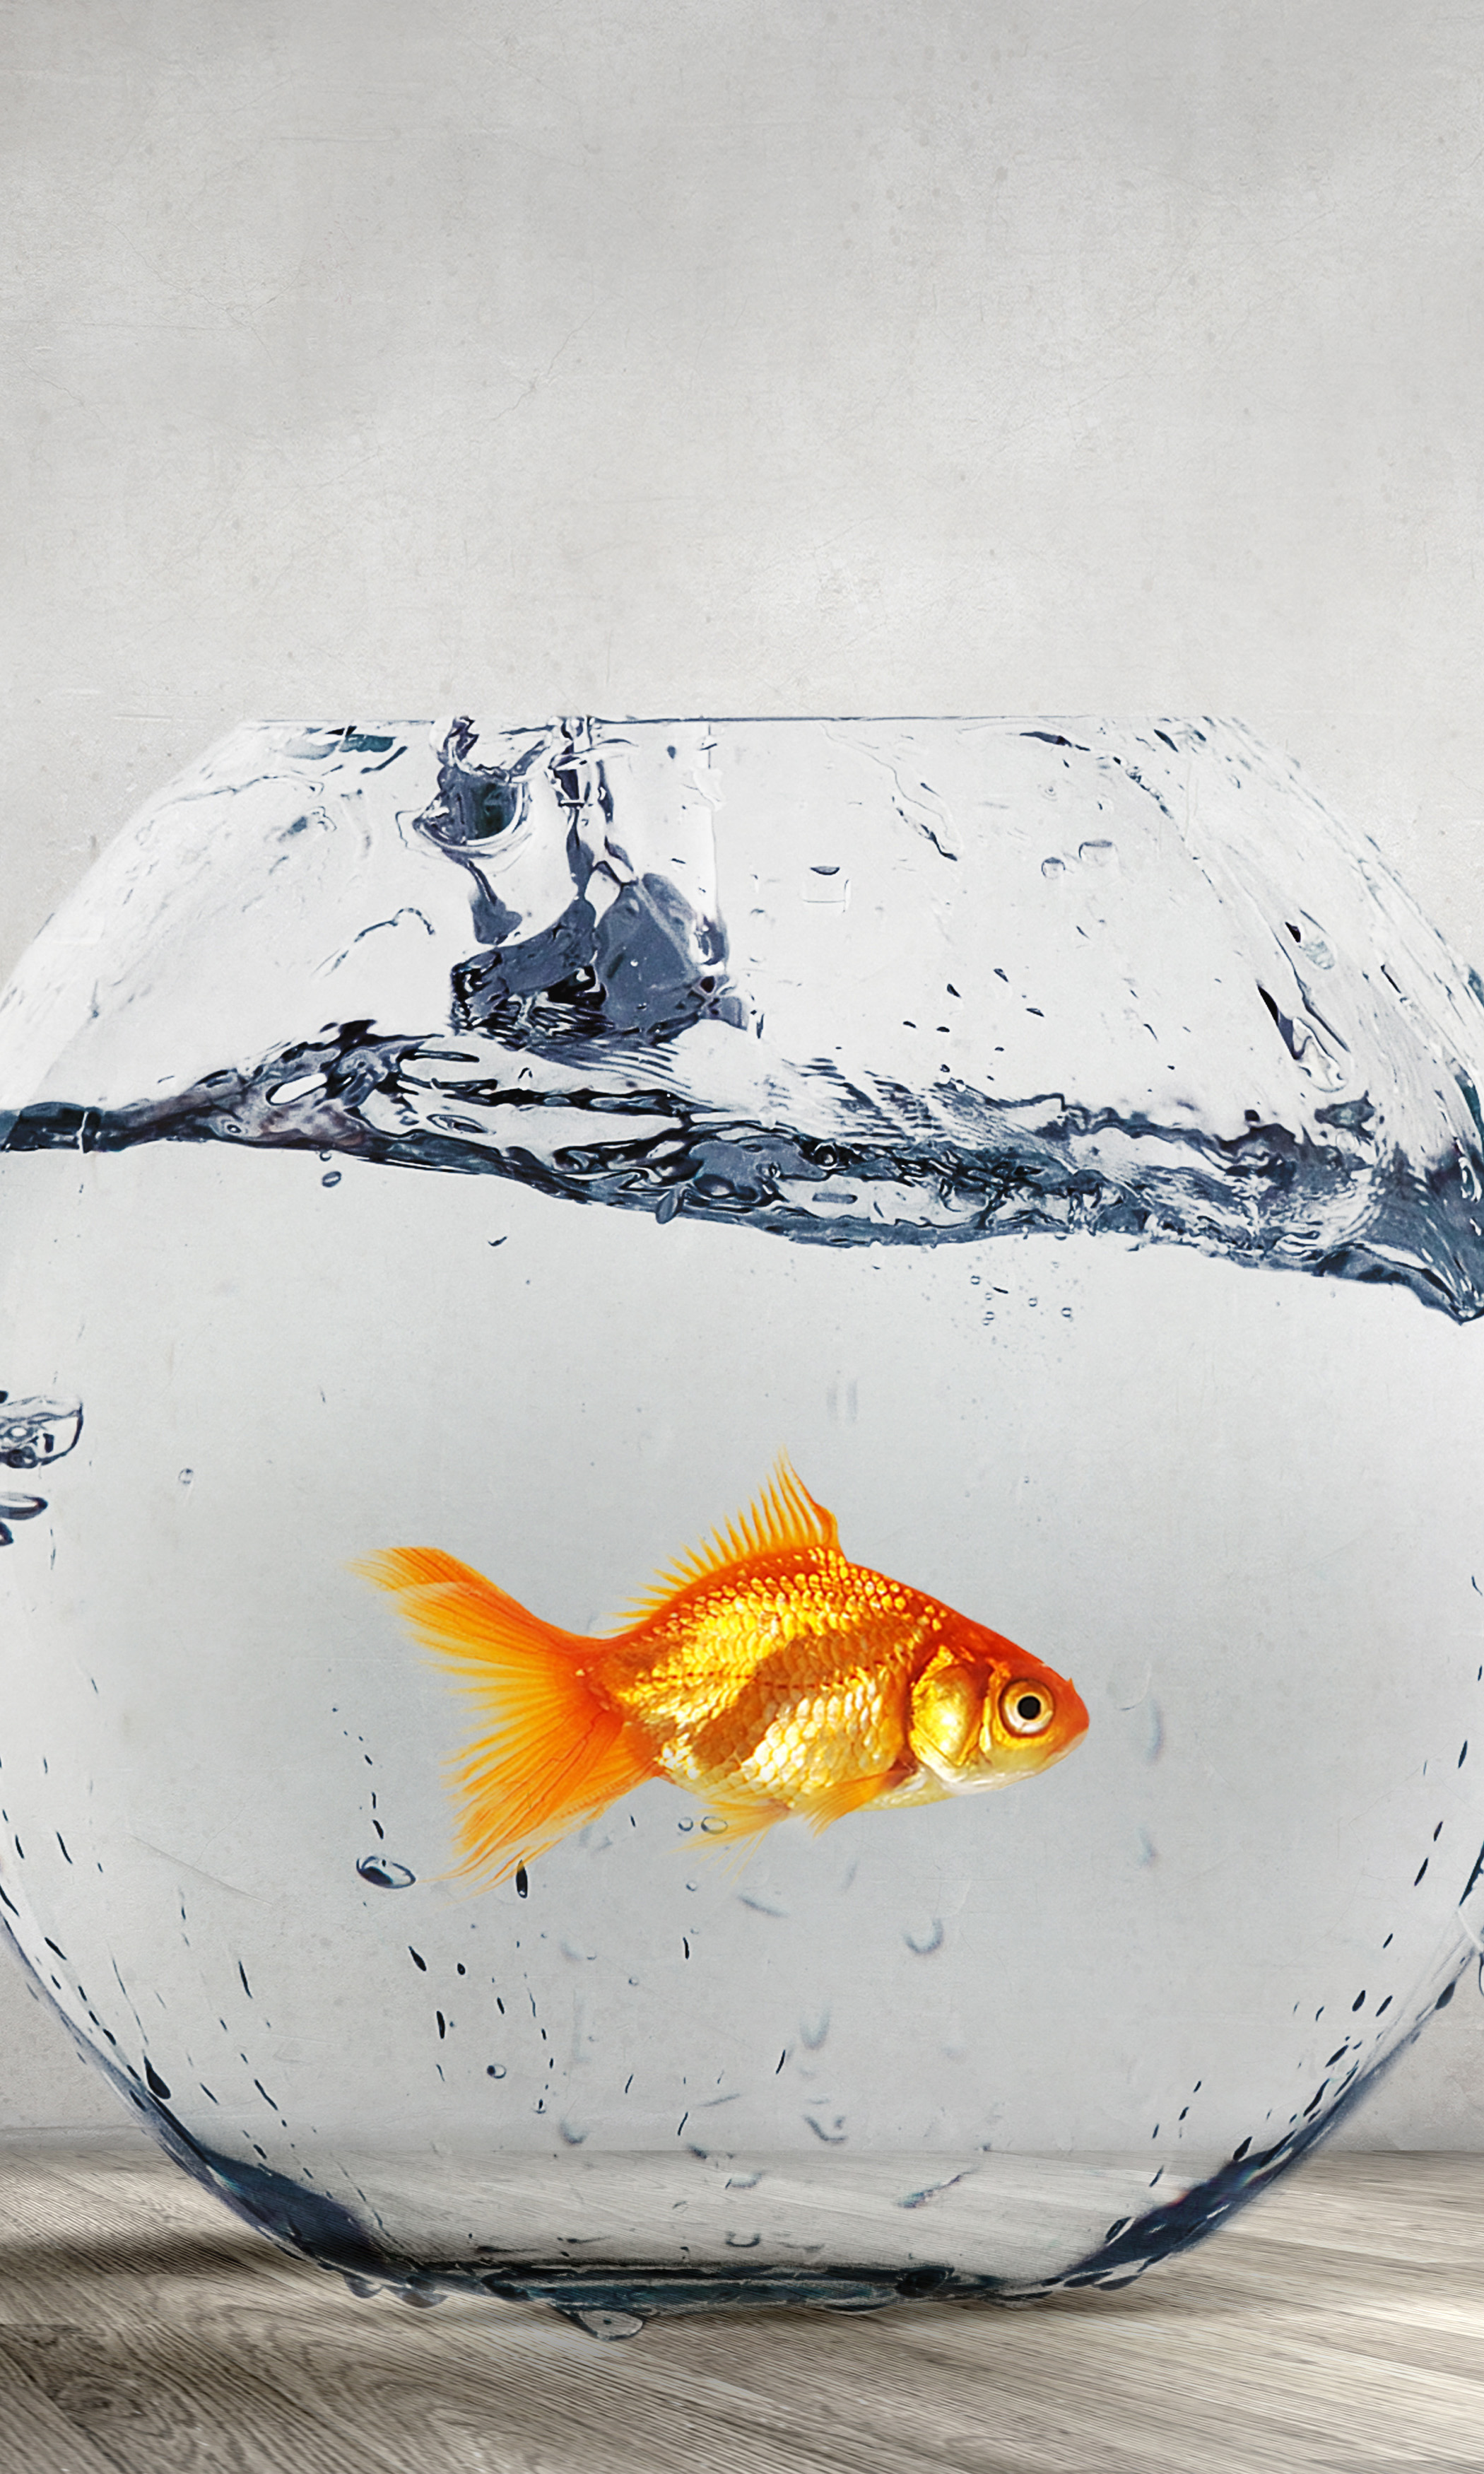 Working in a Fishbowl: Practical Challenges for Public Sector Employees